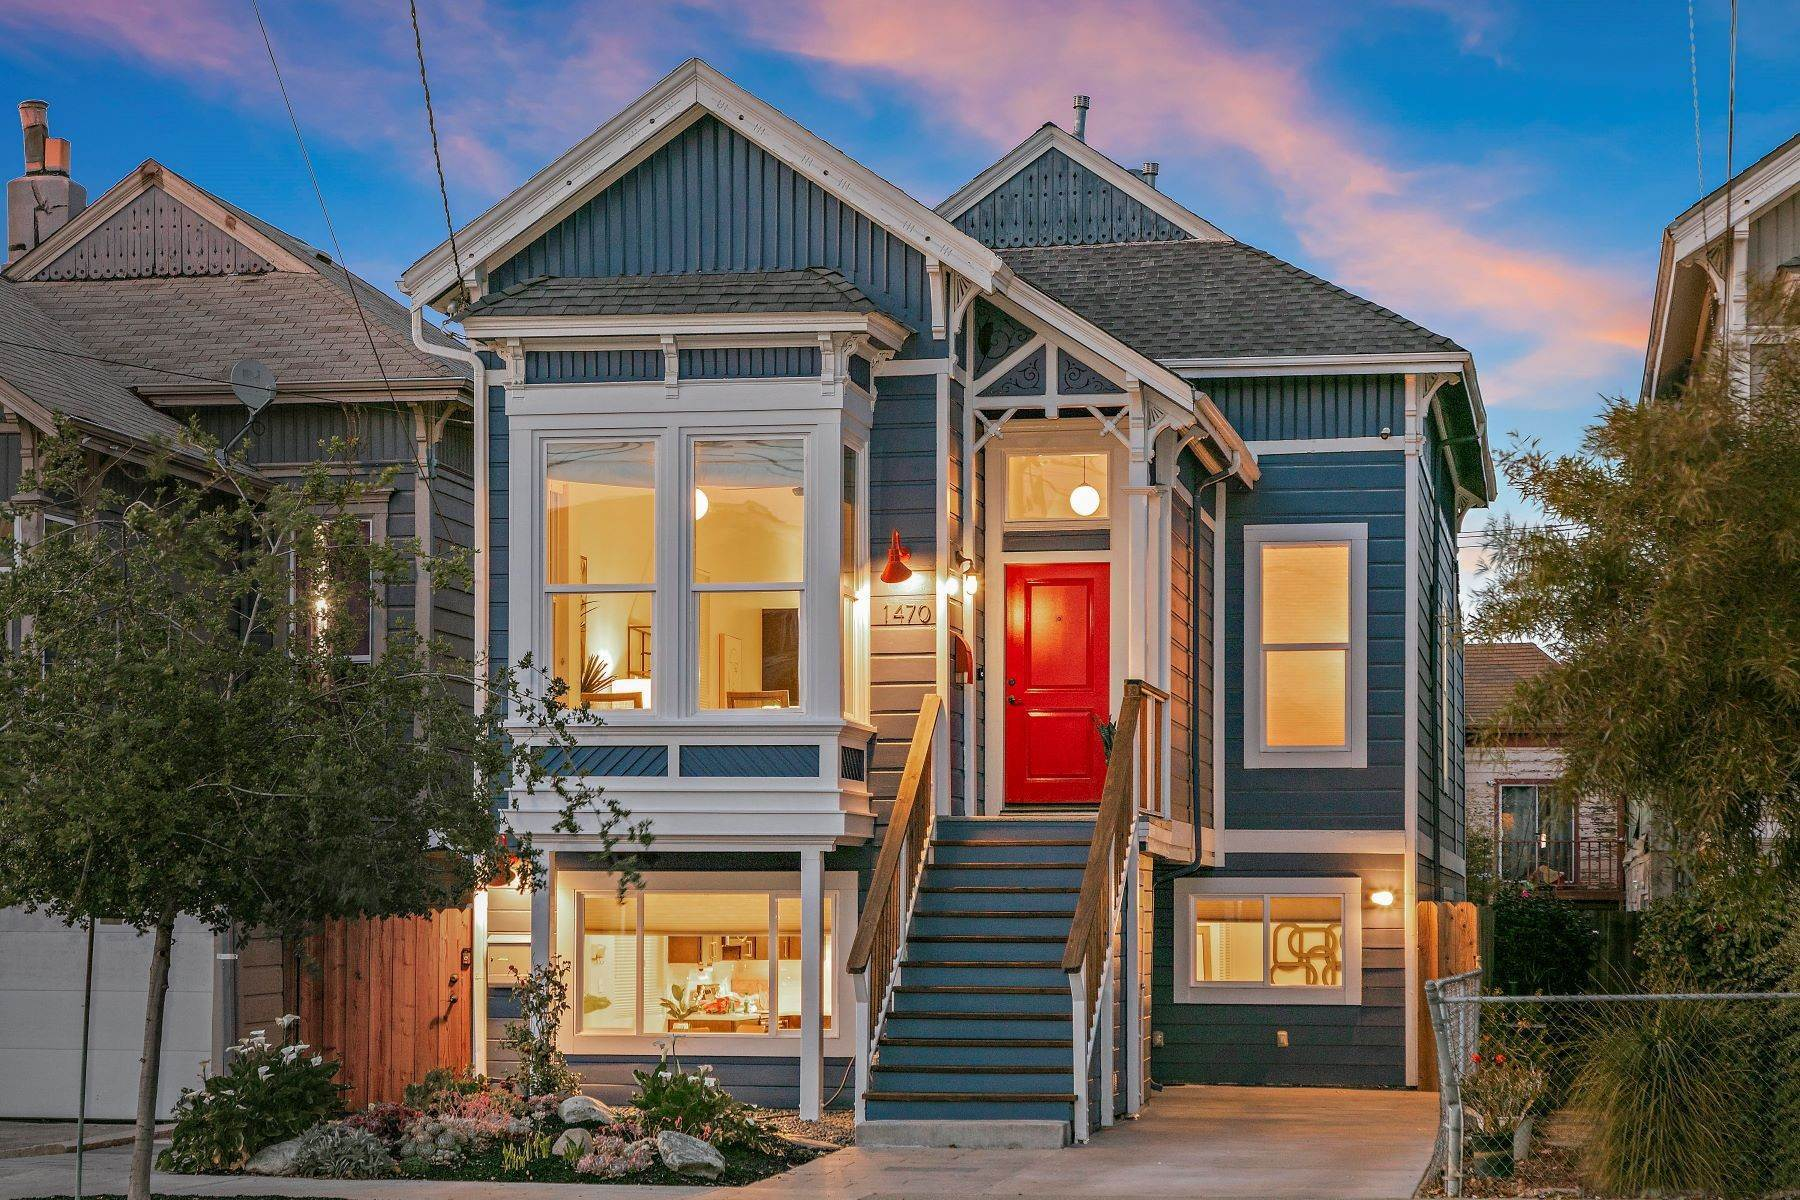 Property for Sale at 'The Blue House' - Eastlake Style Victorian 1470 12th Street Oakland, California 94607 United States